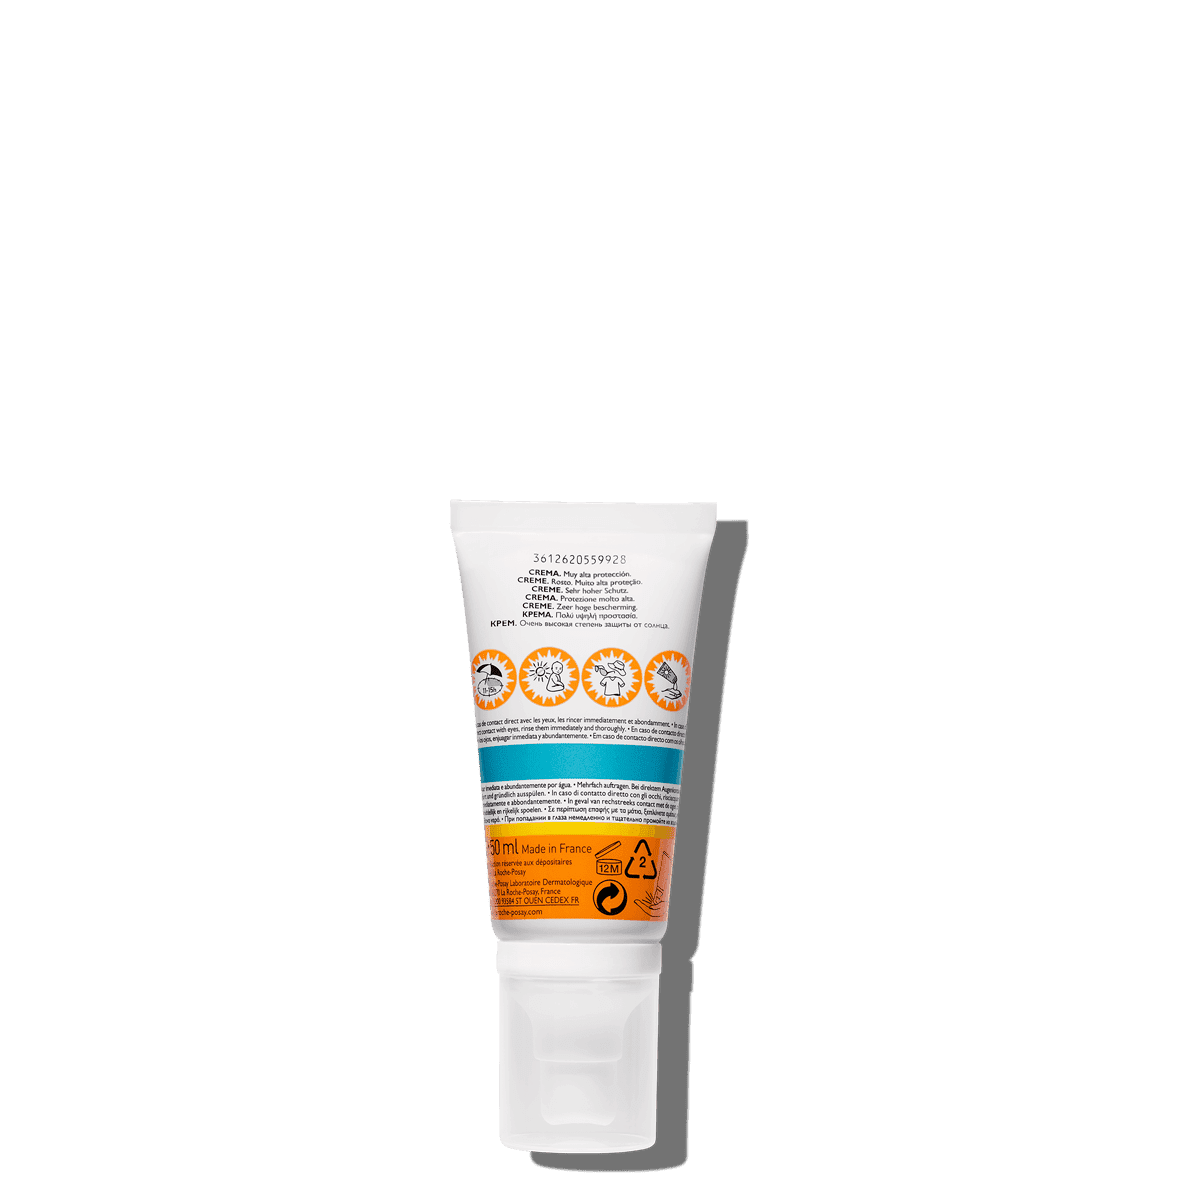 LaRochePosayProductPageSunAntheliosUltraFaceCreamSpf5050ml333787558923